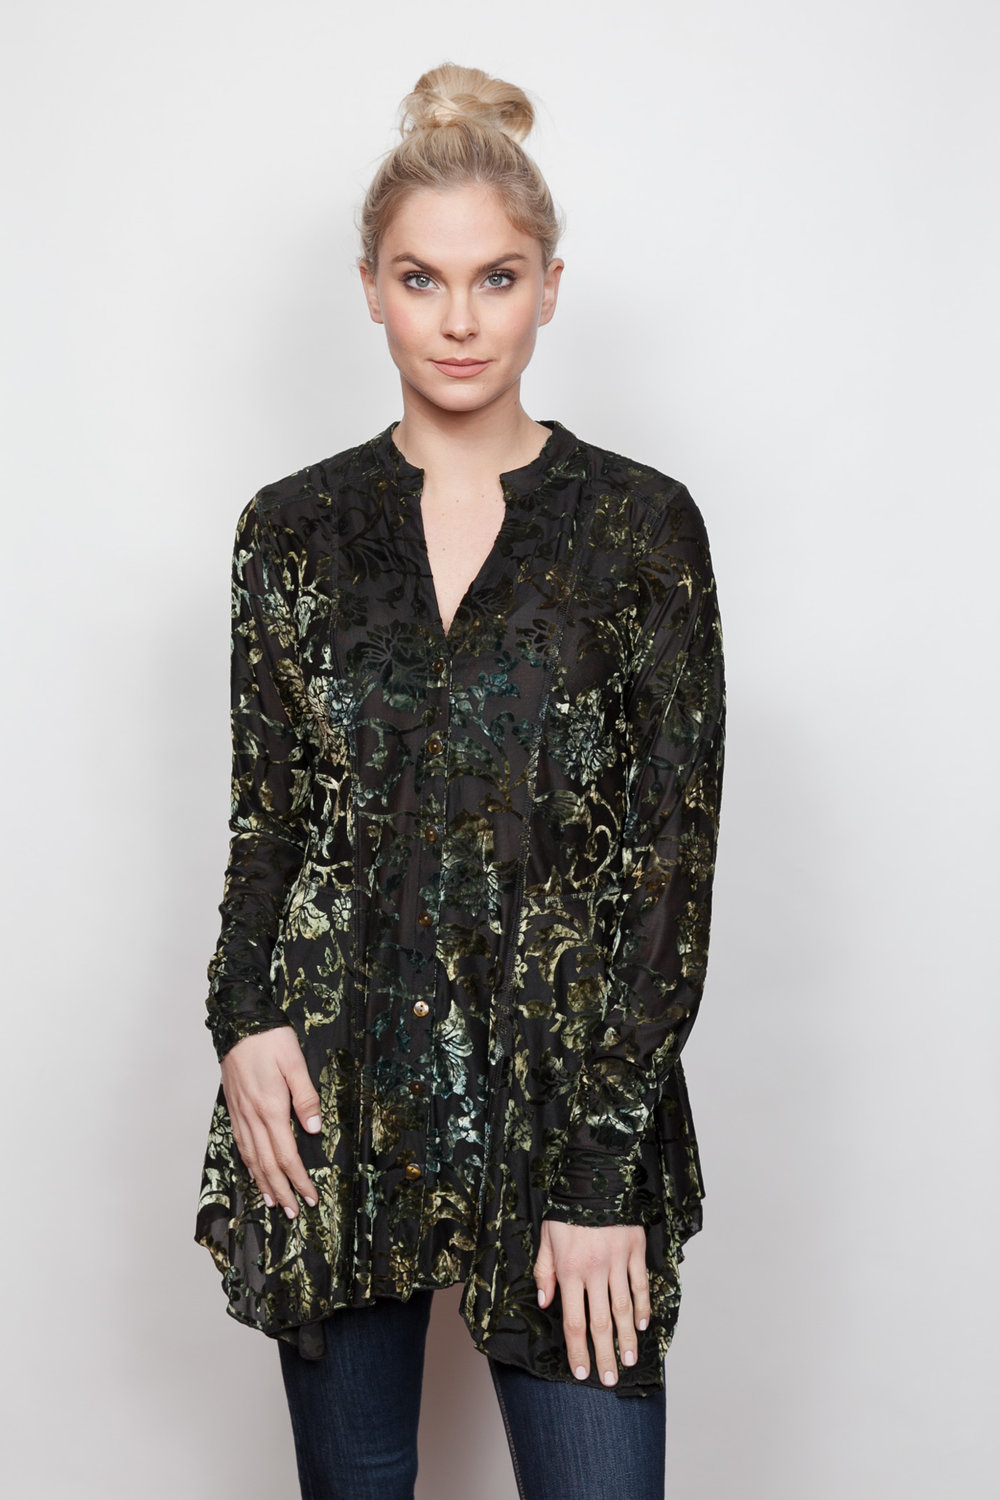 Copy of Style # 13202-18, p 12 </br>Burnout Velvet Prints </br>Pattern: Emerald + 3 others